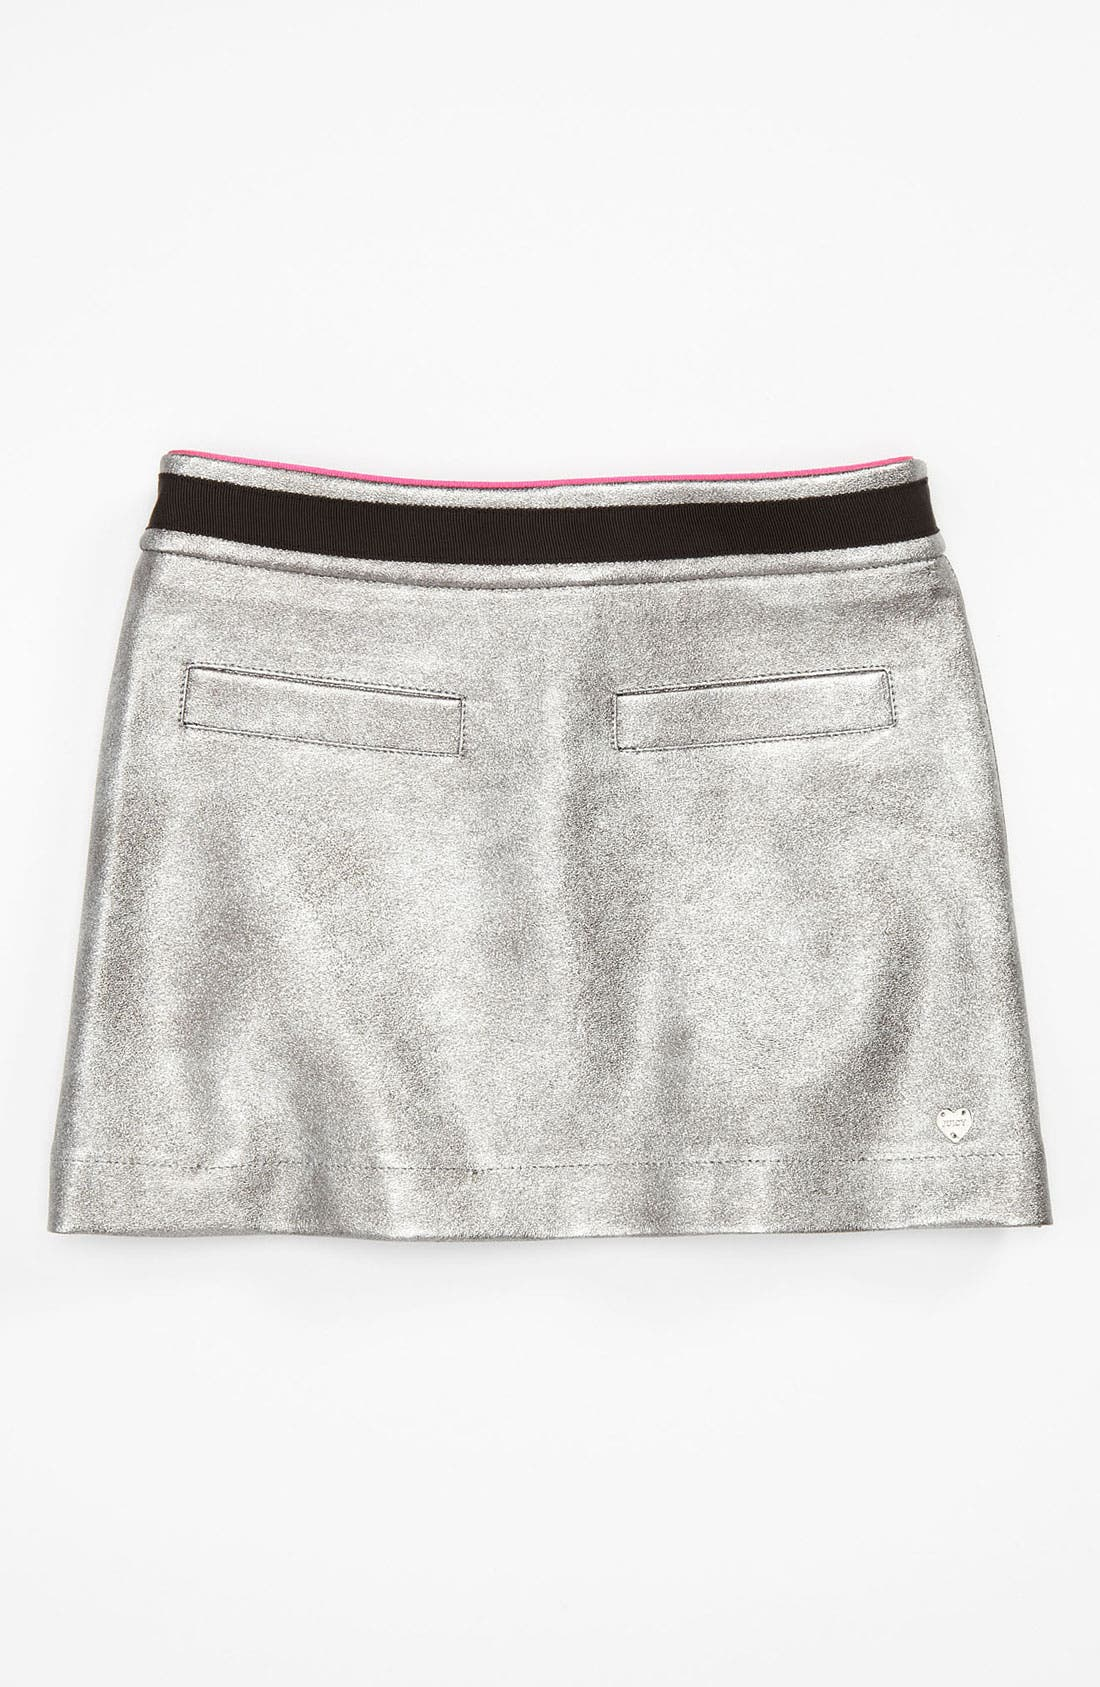 Main Image - Juicy Couture Faux Leather Skirt (Little Girls & Big Girls)